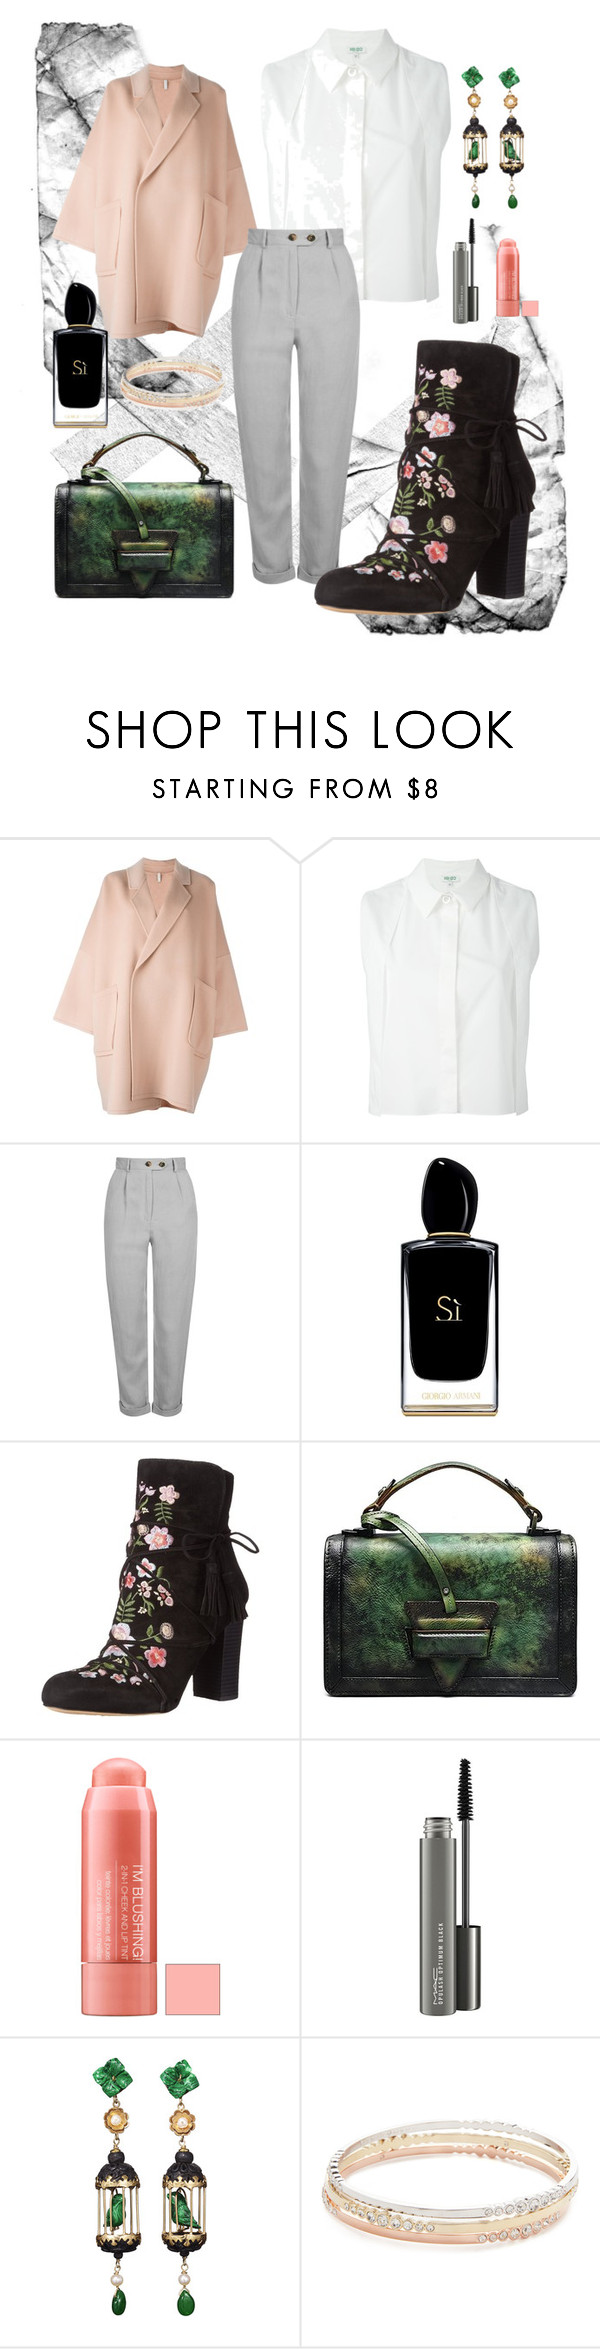 """""""Streets"""" by taykova liked on Polyvore featuring Helmut"""